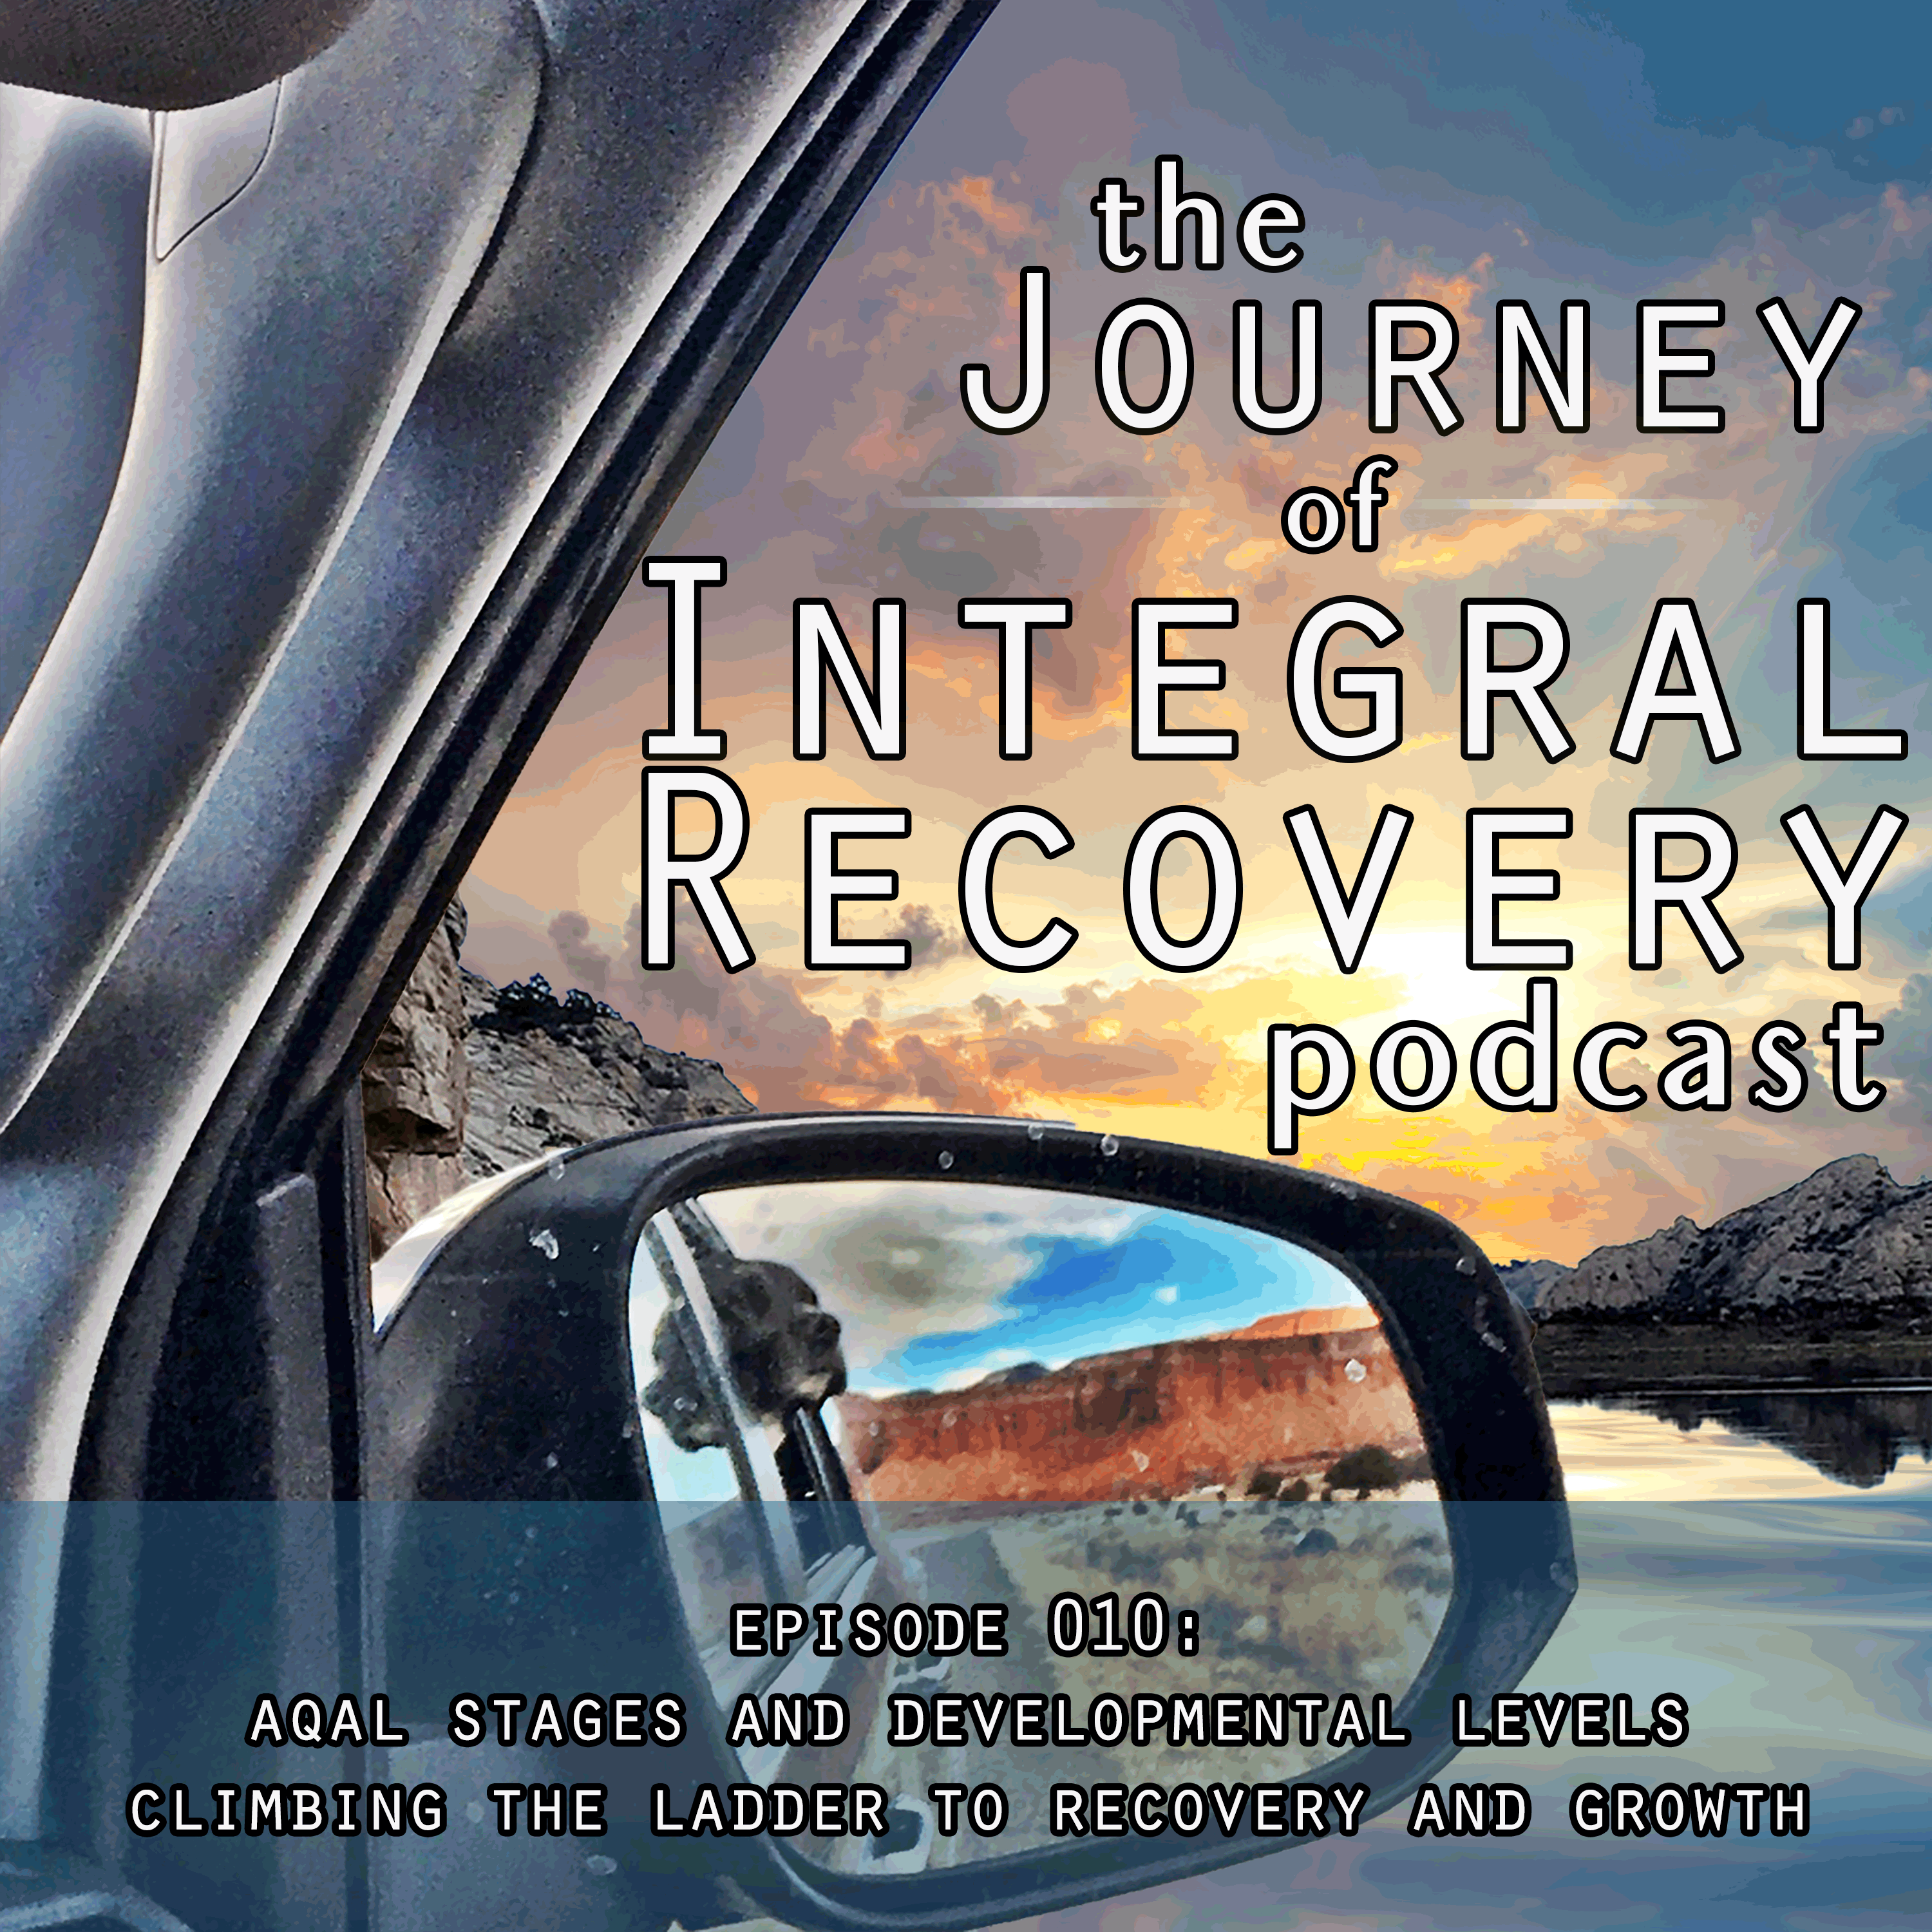 The Journey of Integral Recovery Episode 10: AQAL Stages and Developmental Levels